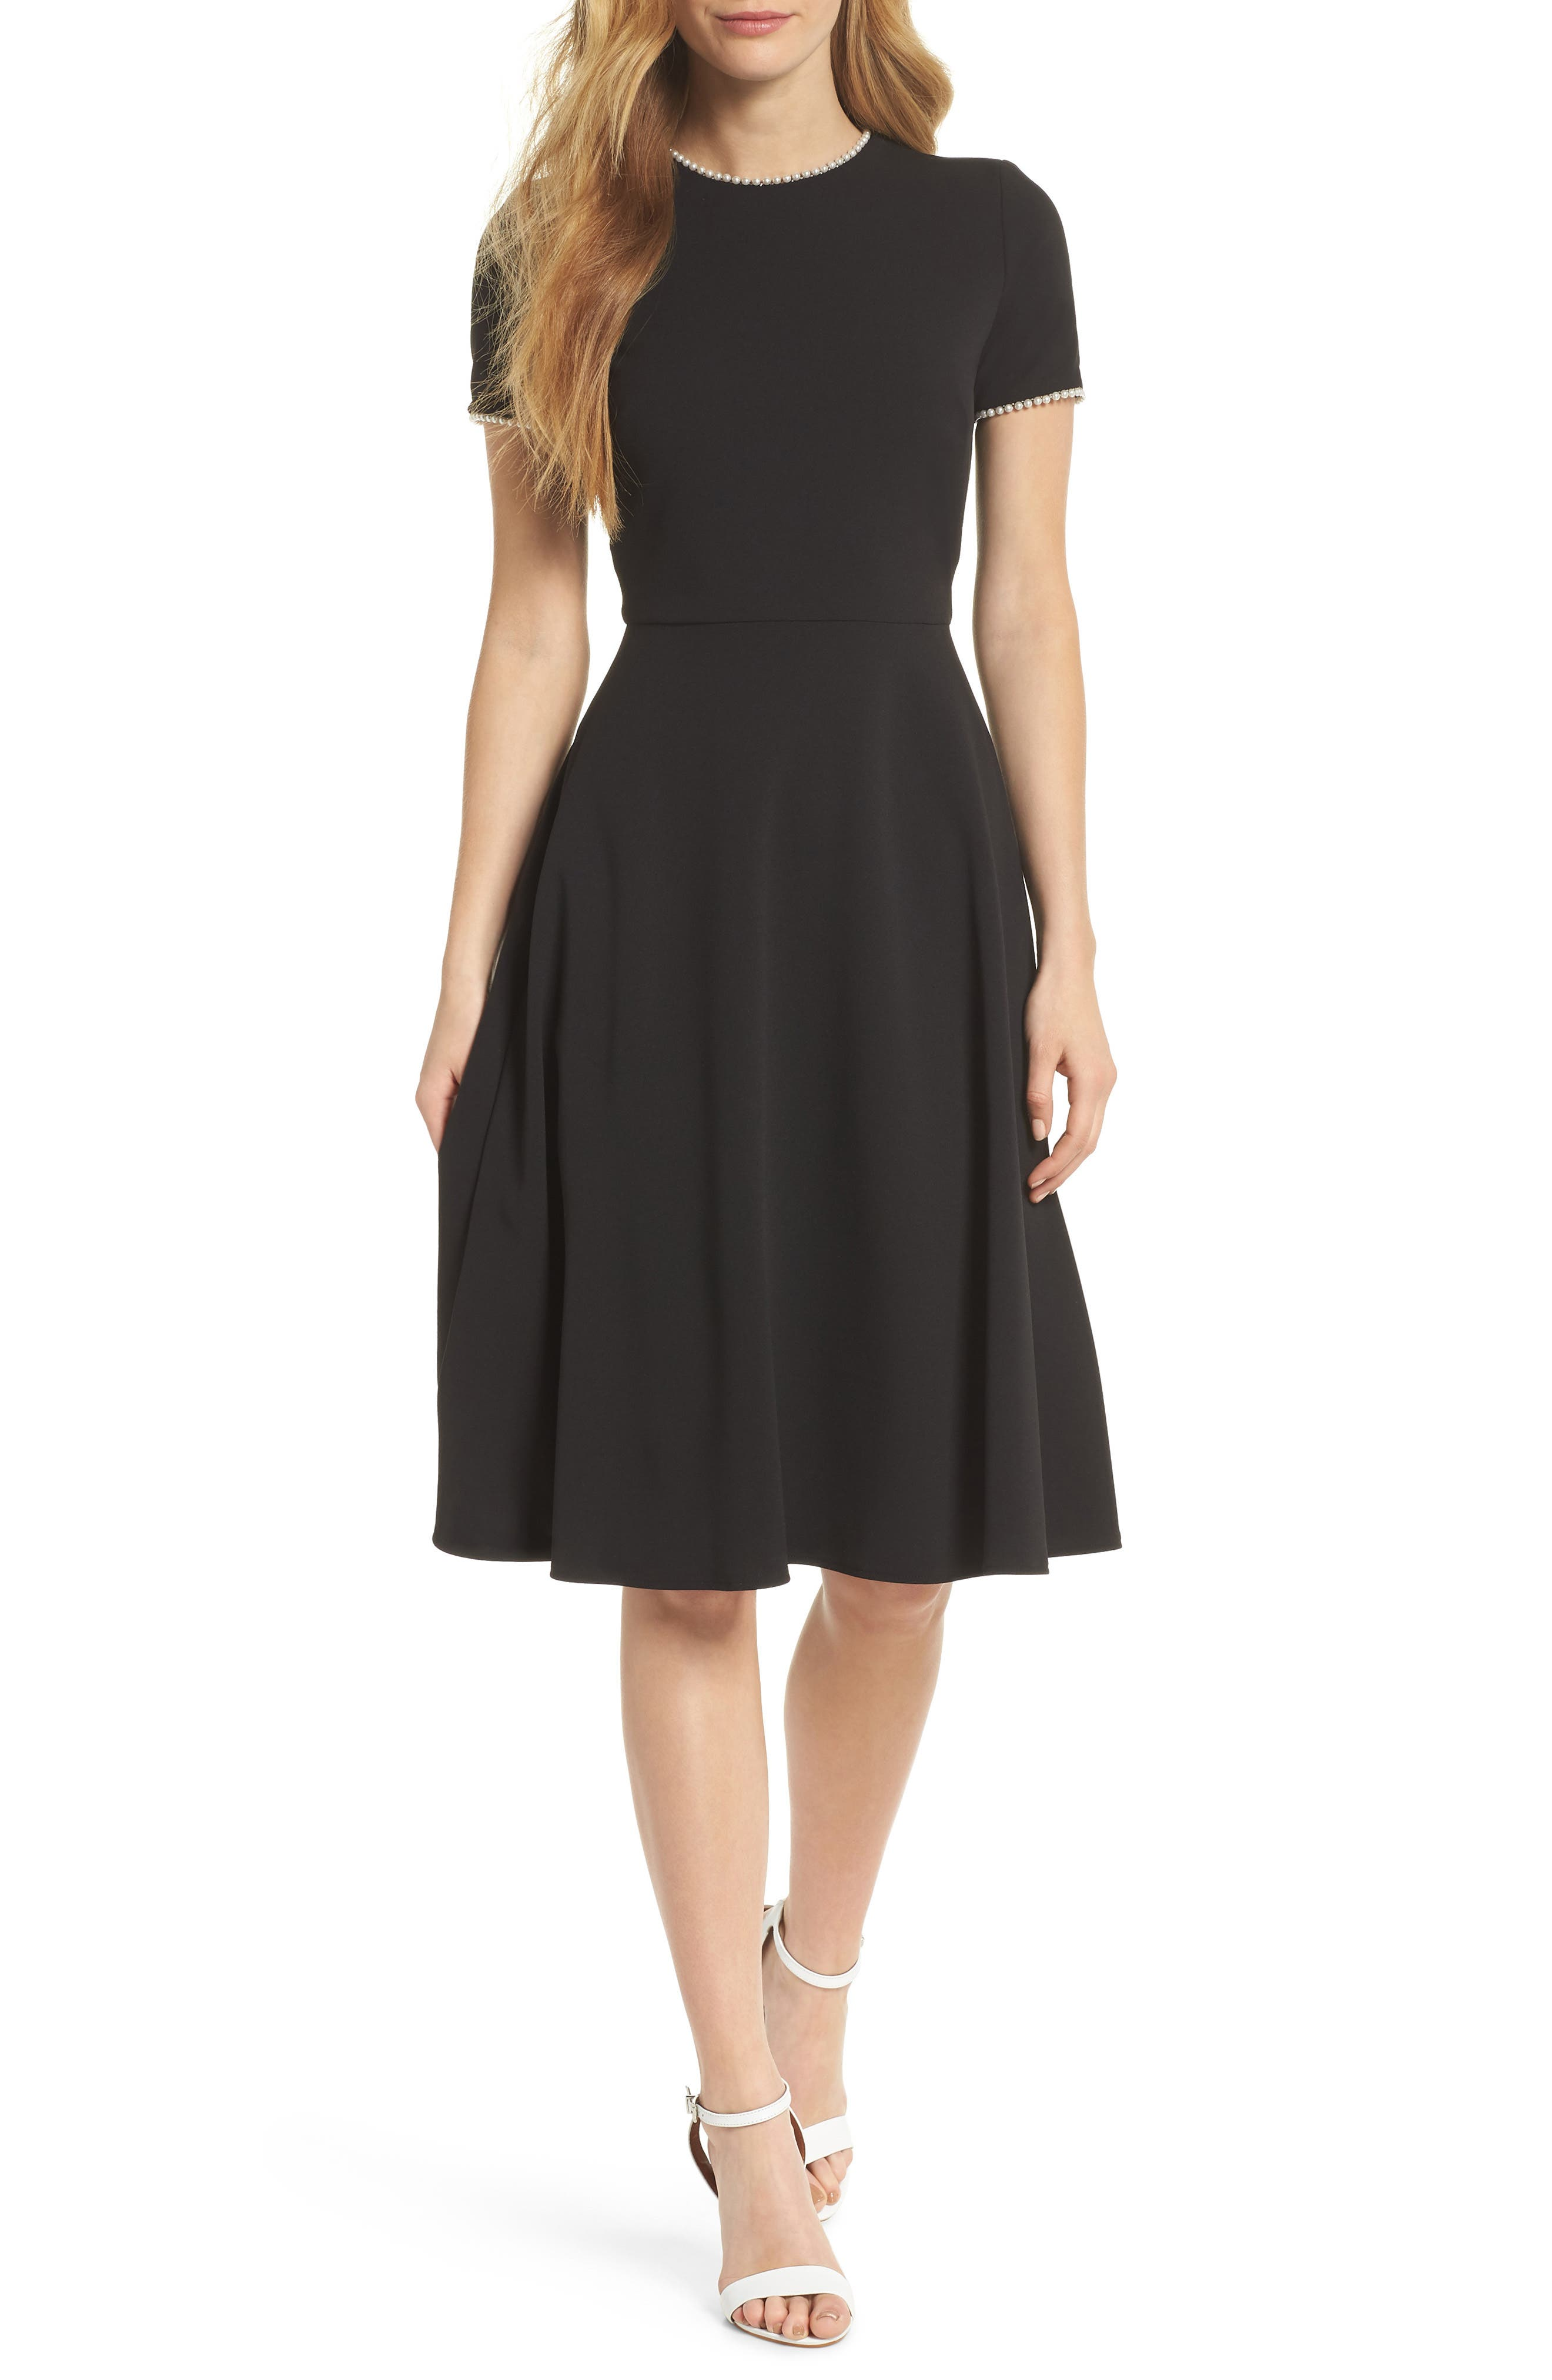 Gal Meets Glam Collection Victoria Pearly Trim Fit & Flare Cocktail Dress, Black (Nordstrom Exclusive)